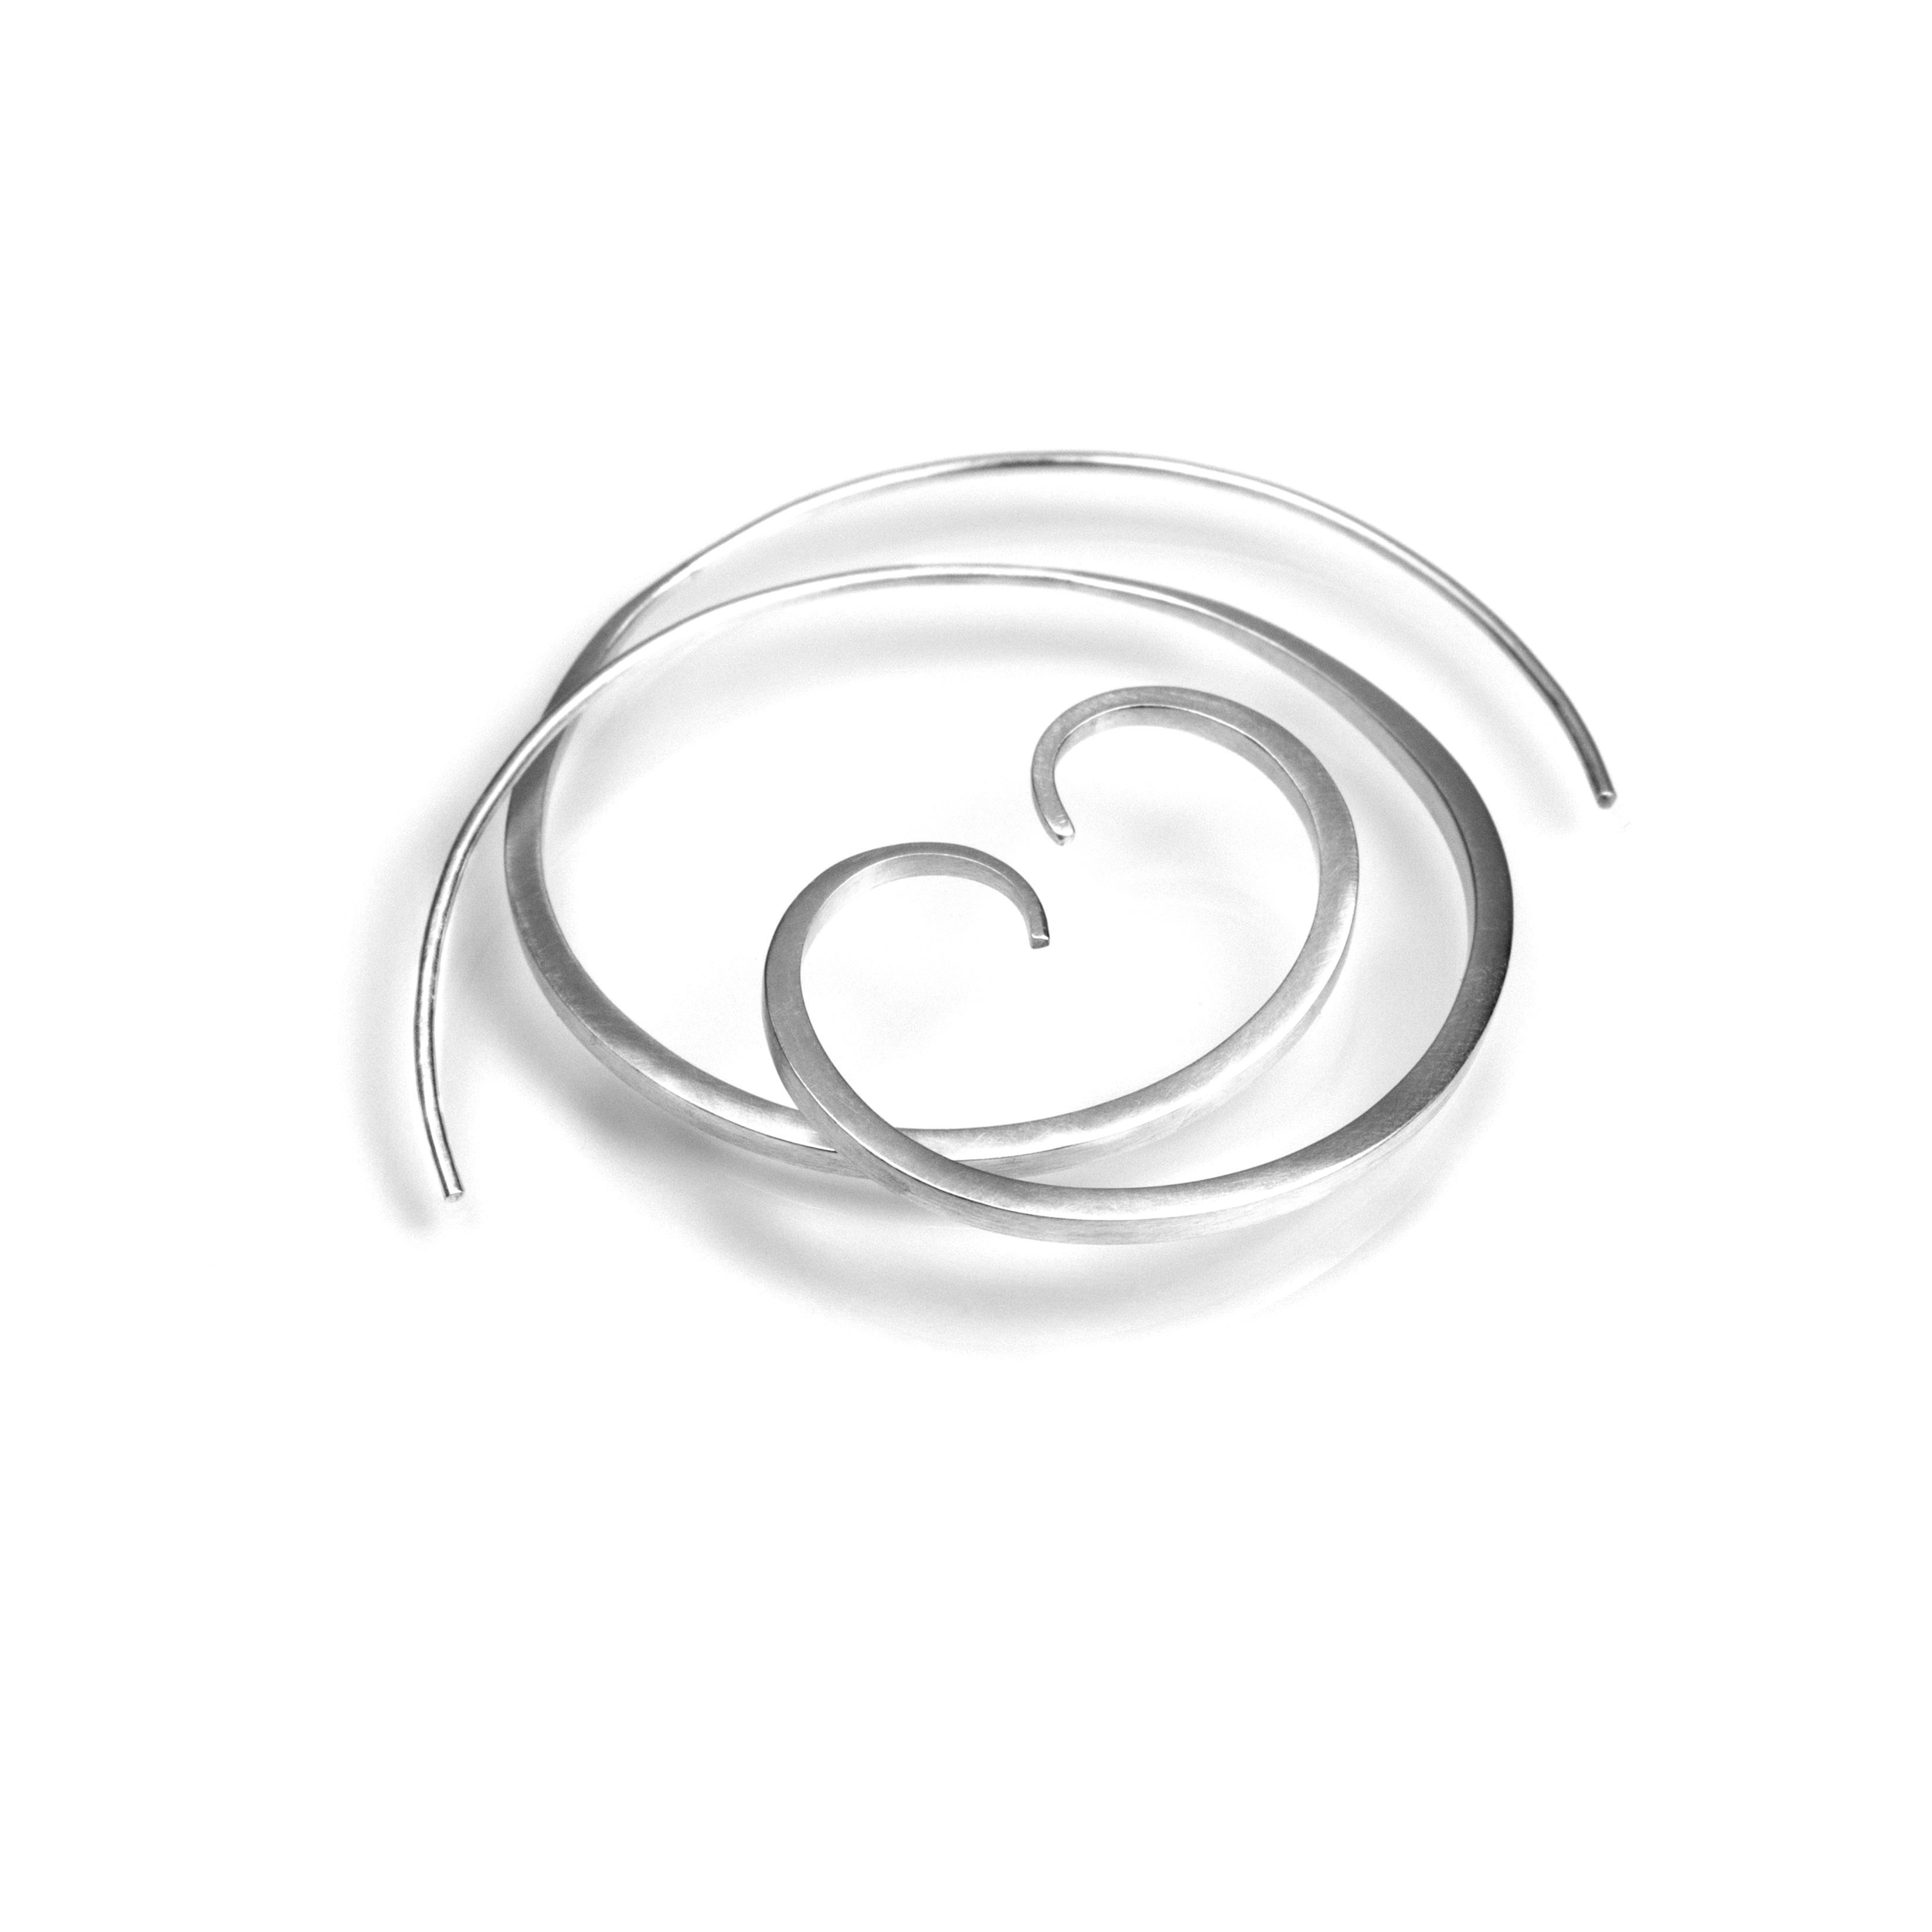 Spiral Forged Earrings